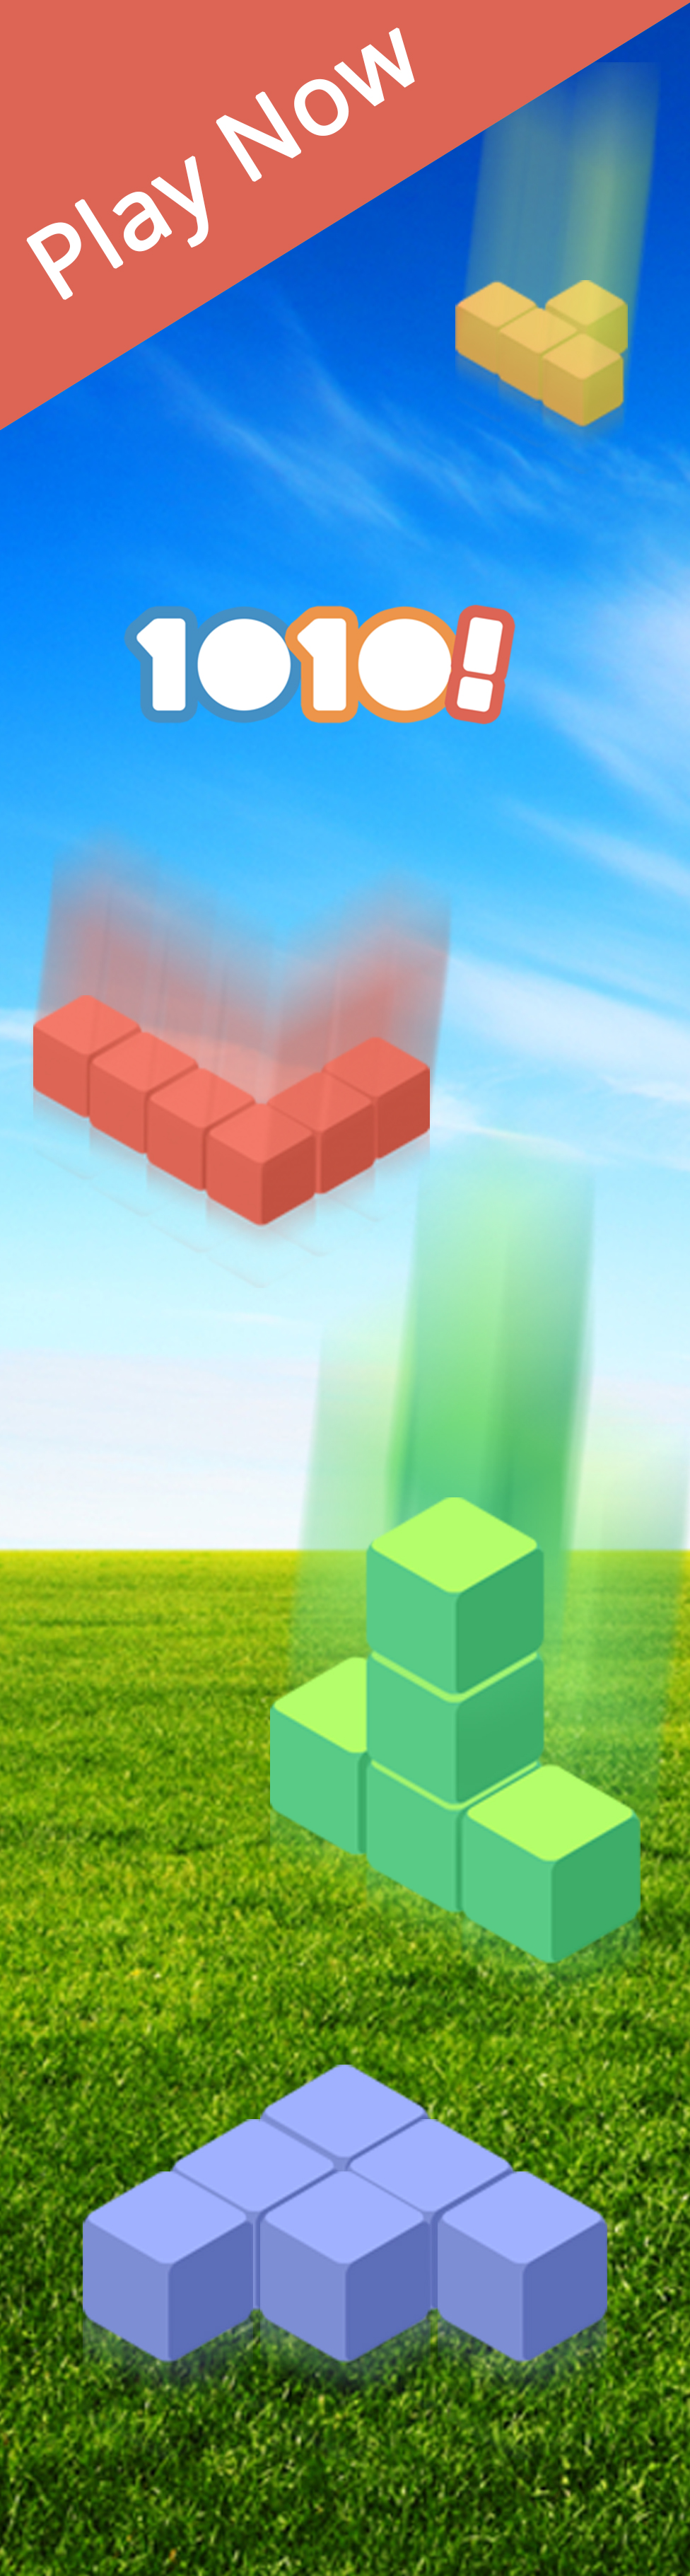 Play 1010!, the perfect mobile puzzle game!!!